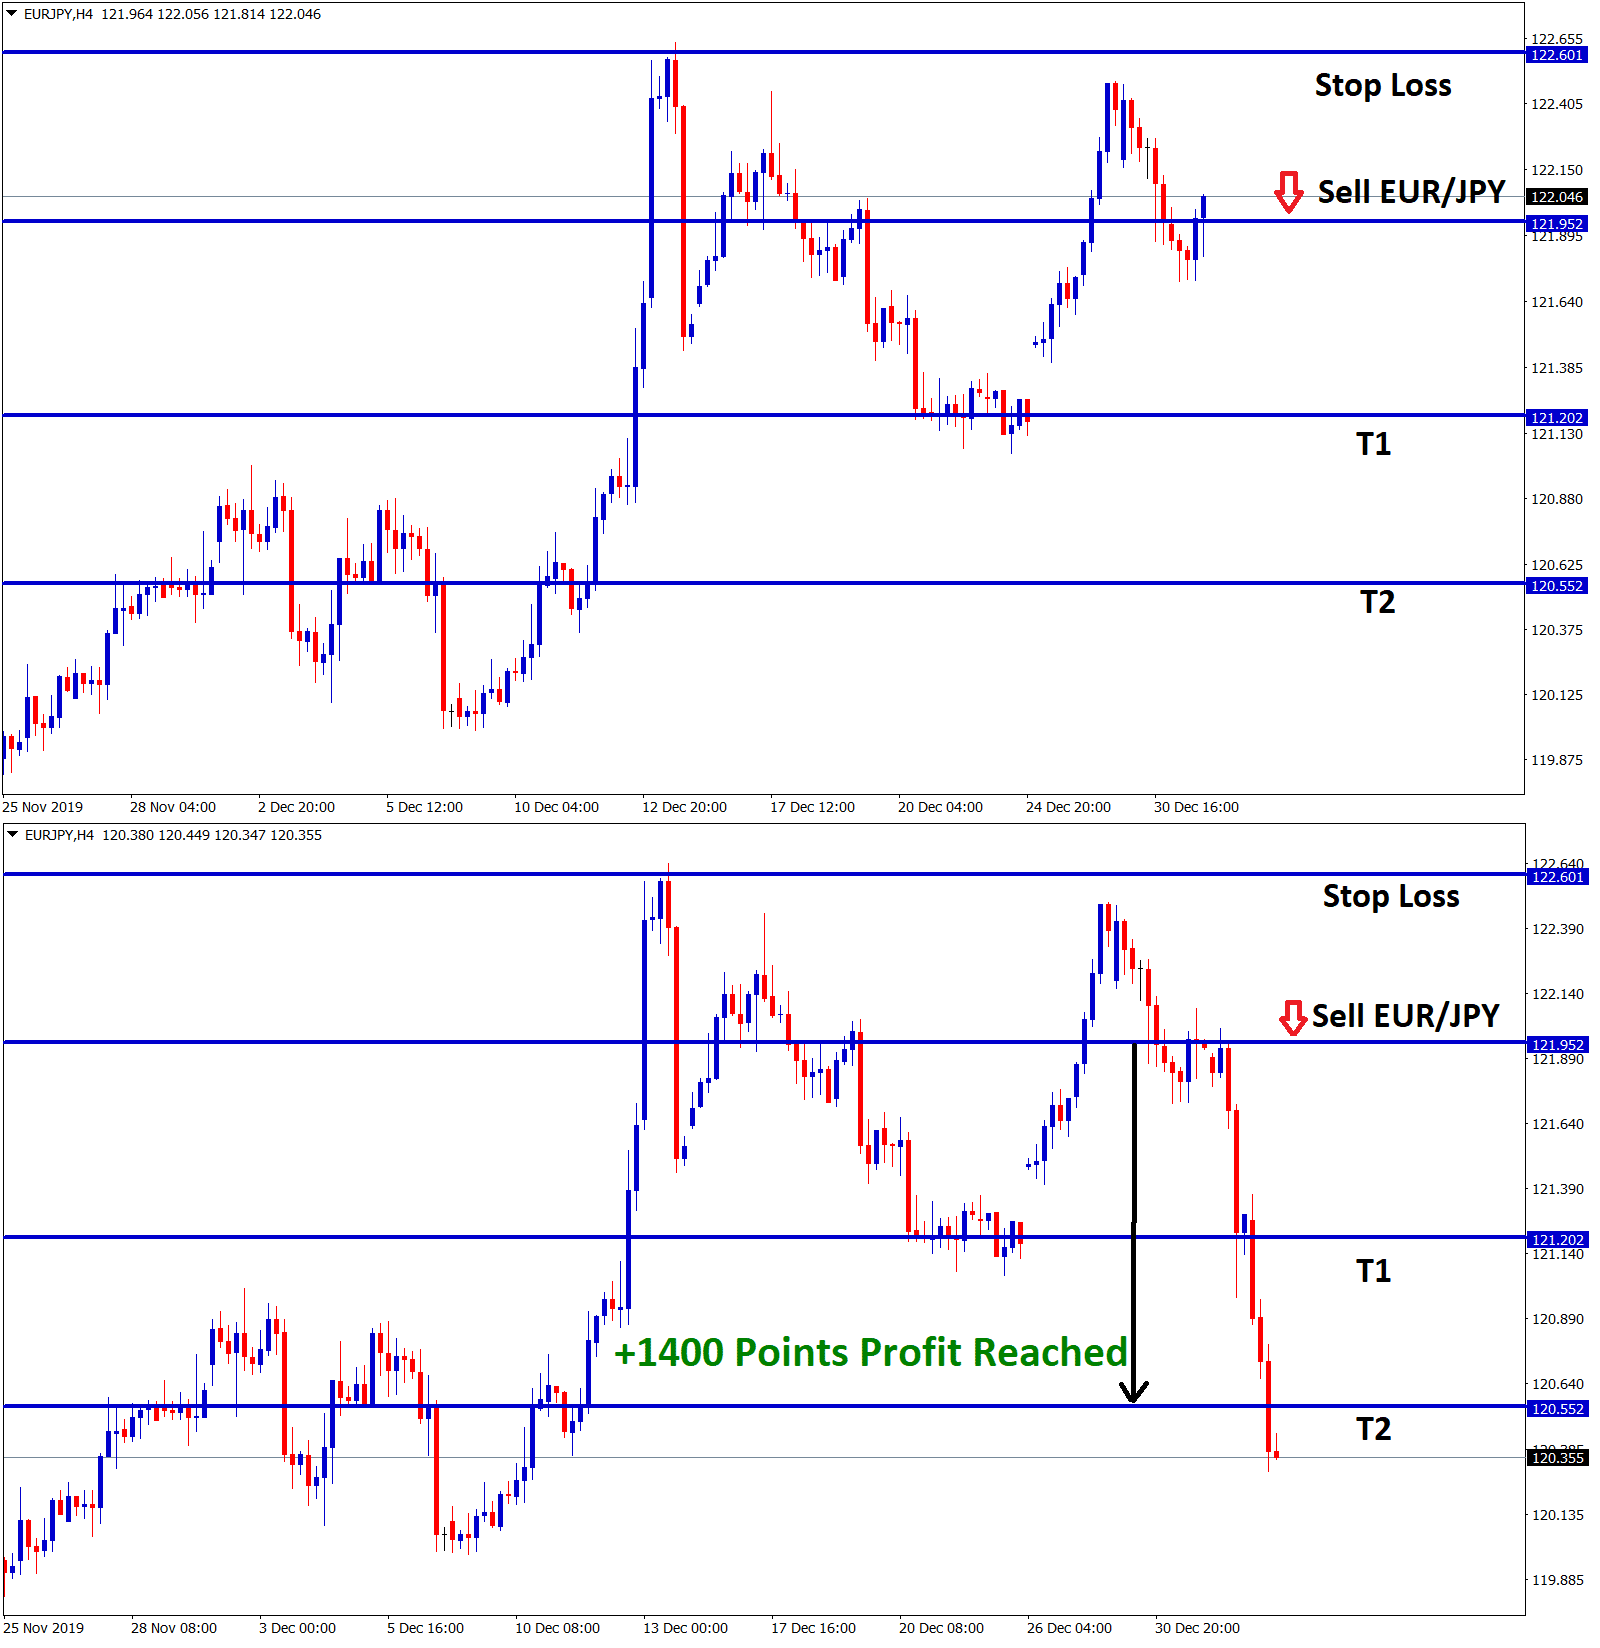 eur jpy hits +1400 points in sell signal